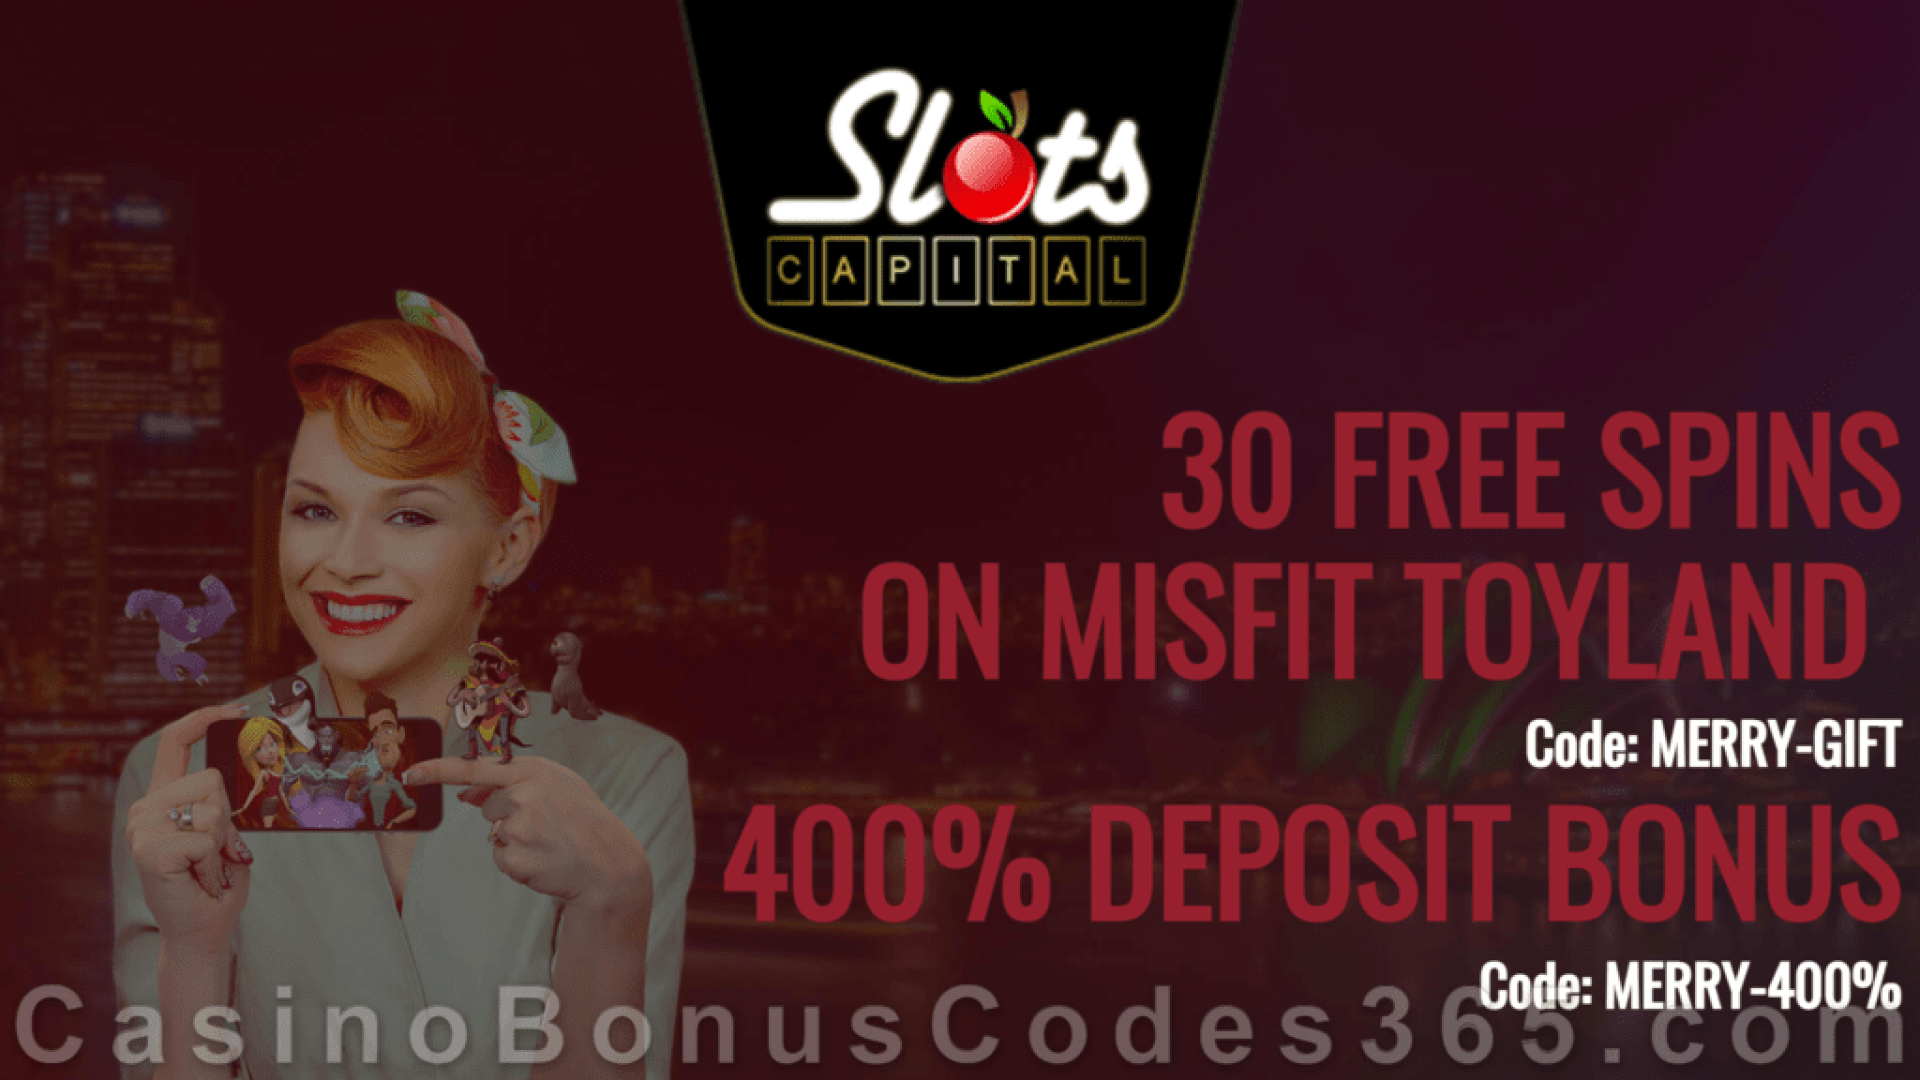 Slots Capital Online Casino 30 FREE Spins on Rival Gaming Misfit Toyland plus 400% Match Bonus Holiday Season Special Deal